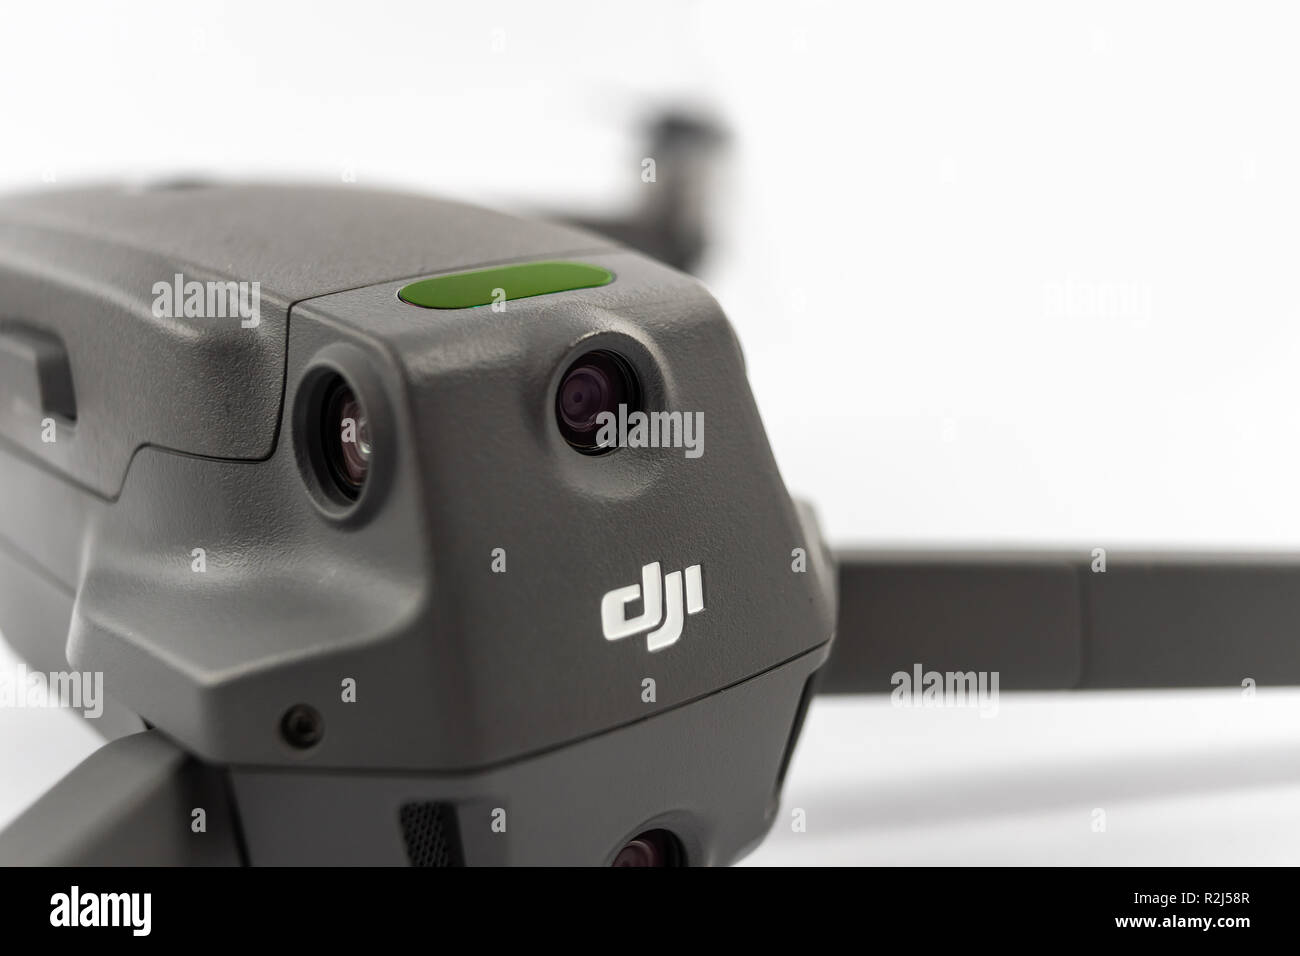 Germany, November 17, 2018: Detail of the rear side of the Mavic 2 pro with the logo and lettering of the Chinese manufacturer DJI - Stock Image